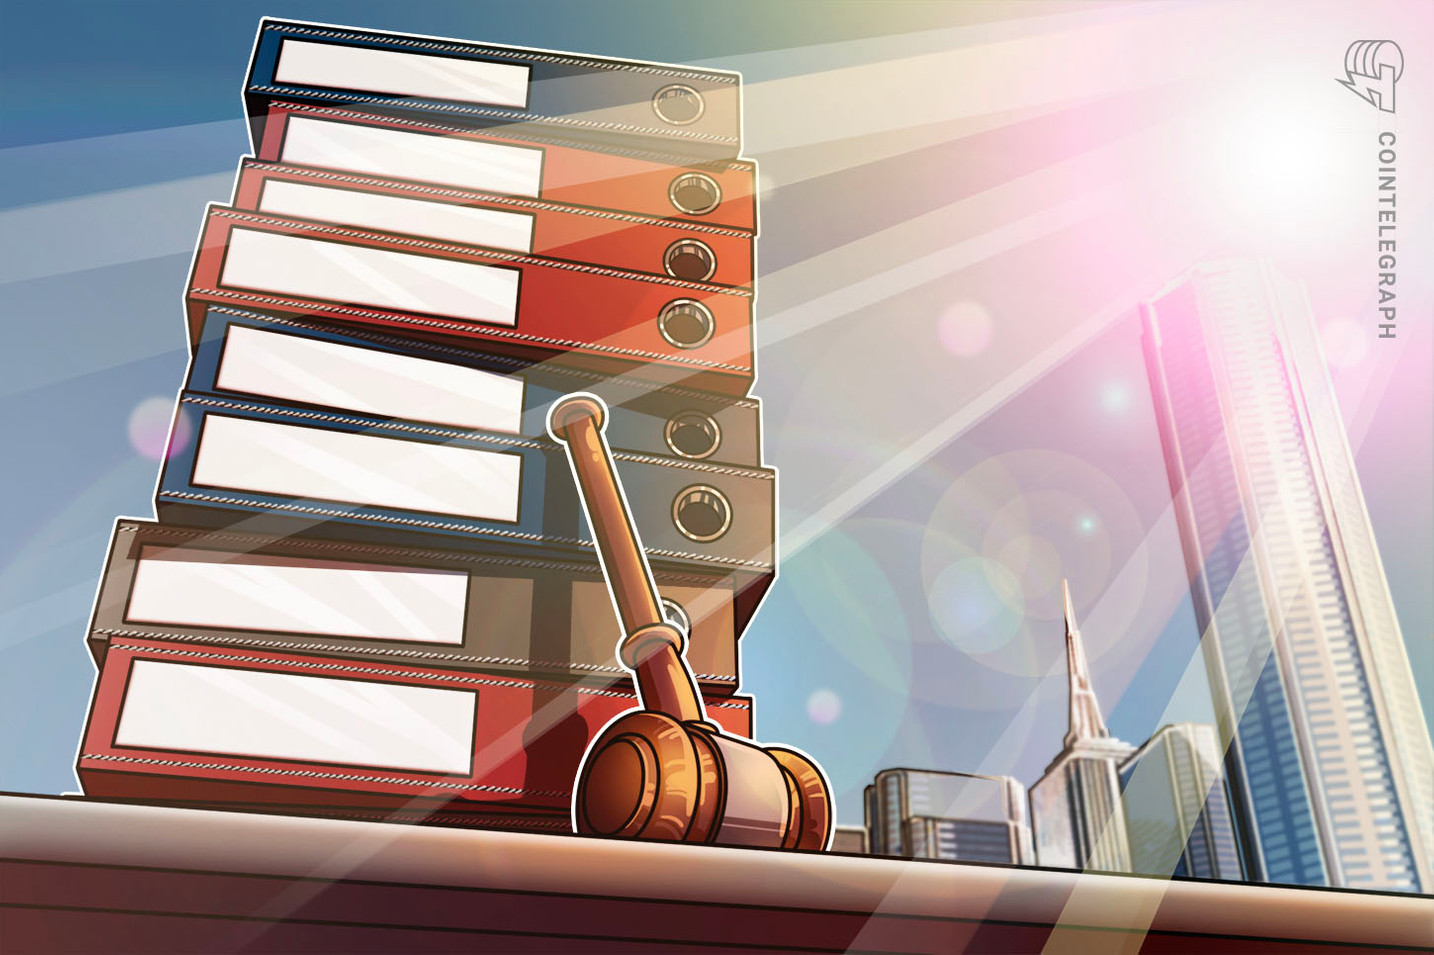 Bitcoin Mining Firm Layer1 Accused of Copyright Infringement